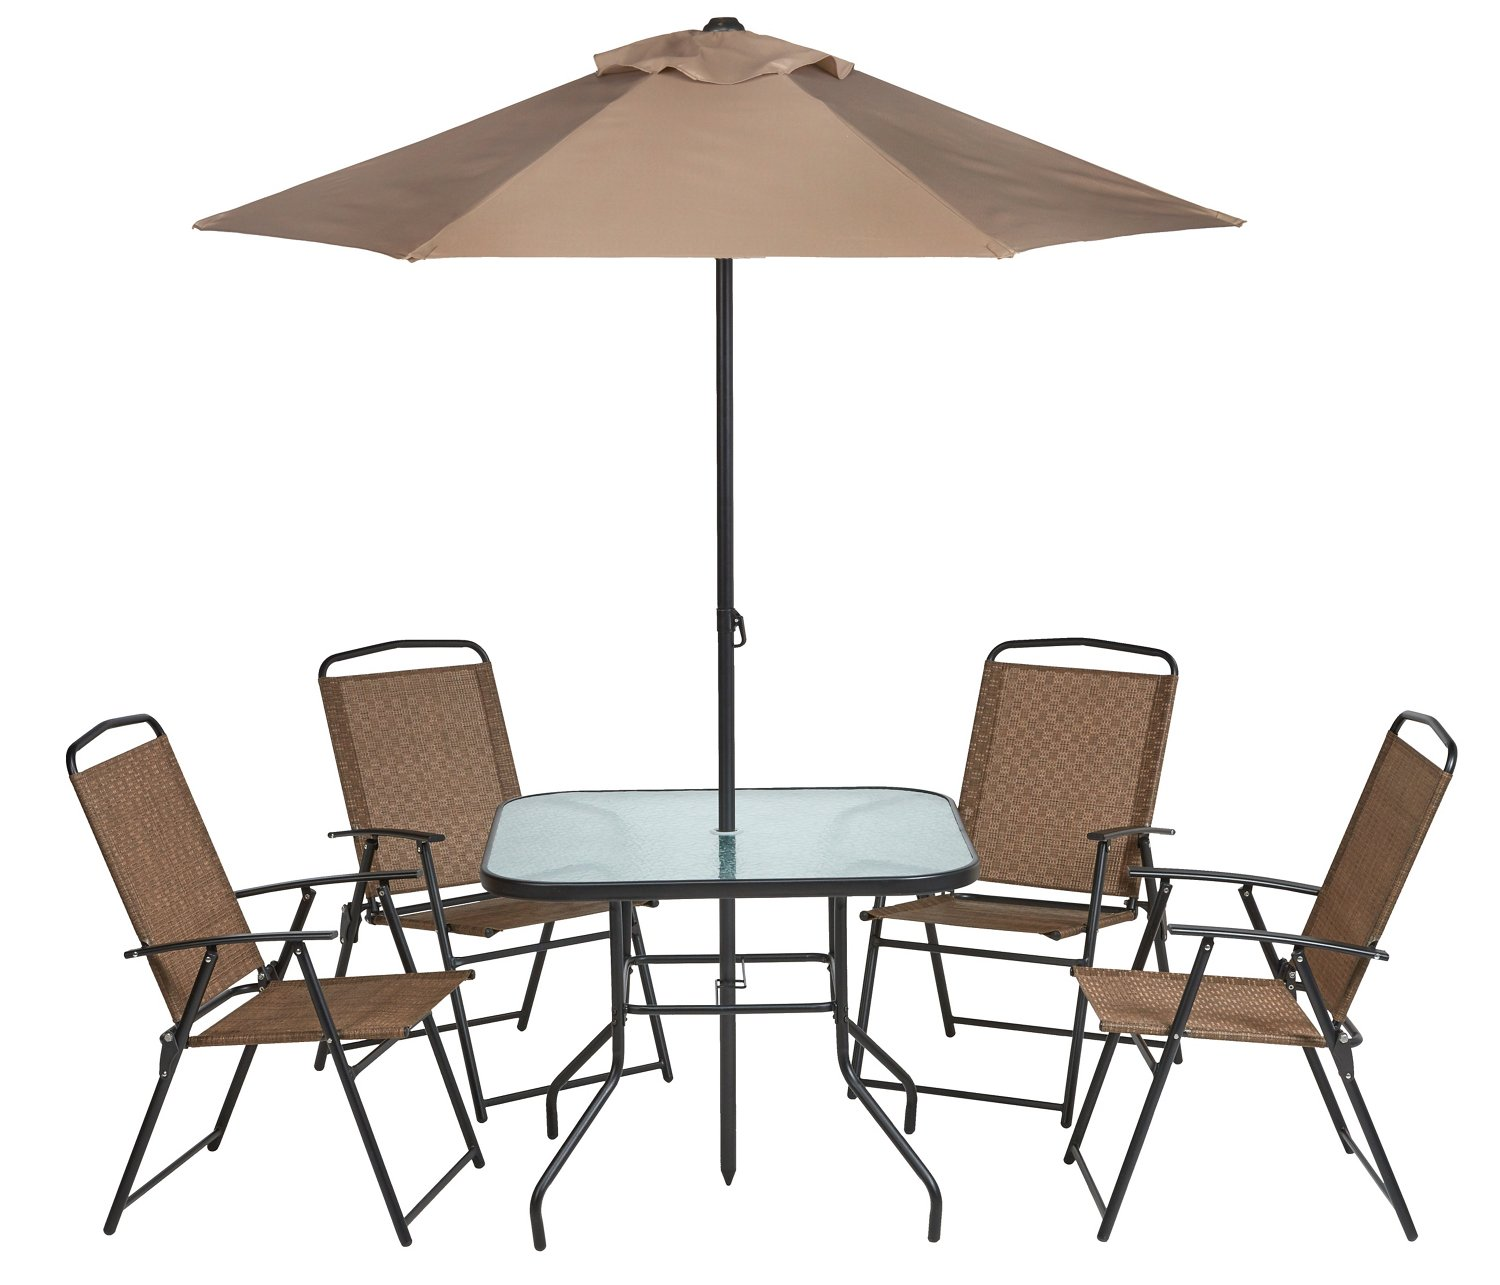 patio furniture academy bella green mosaic outdoor accent table display product reviews for piece dining set wide threshold wood beach floor lamp chairs bunnings bar round plastic